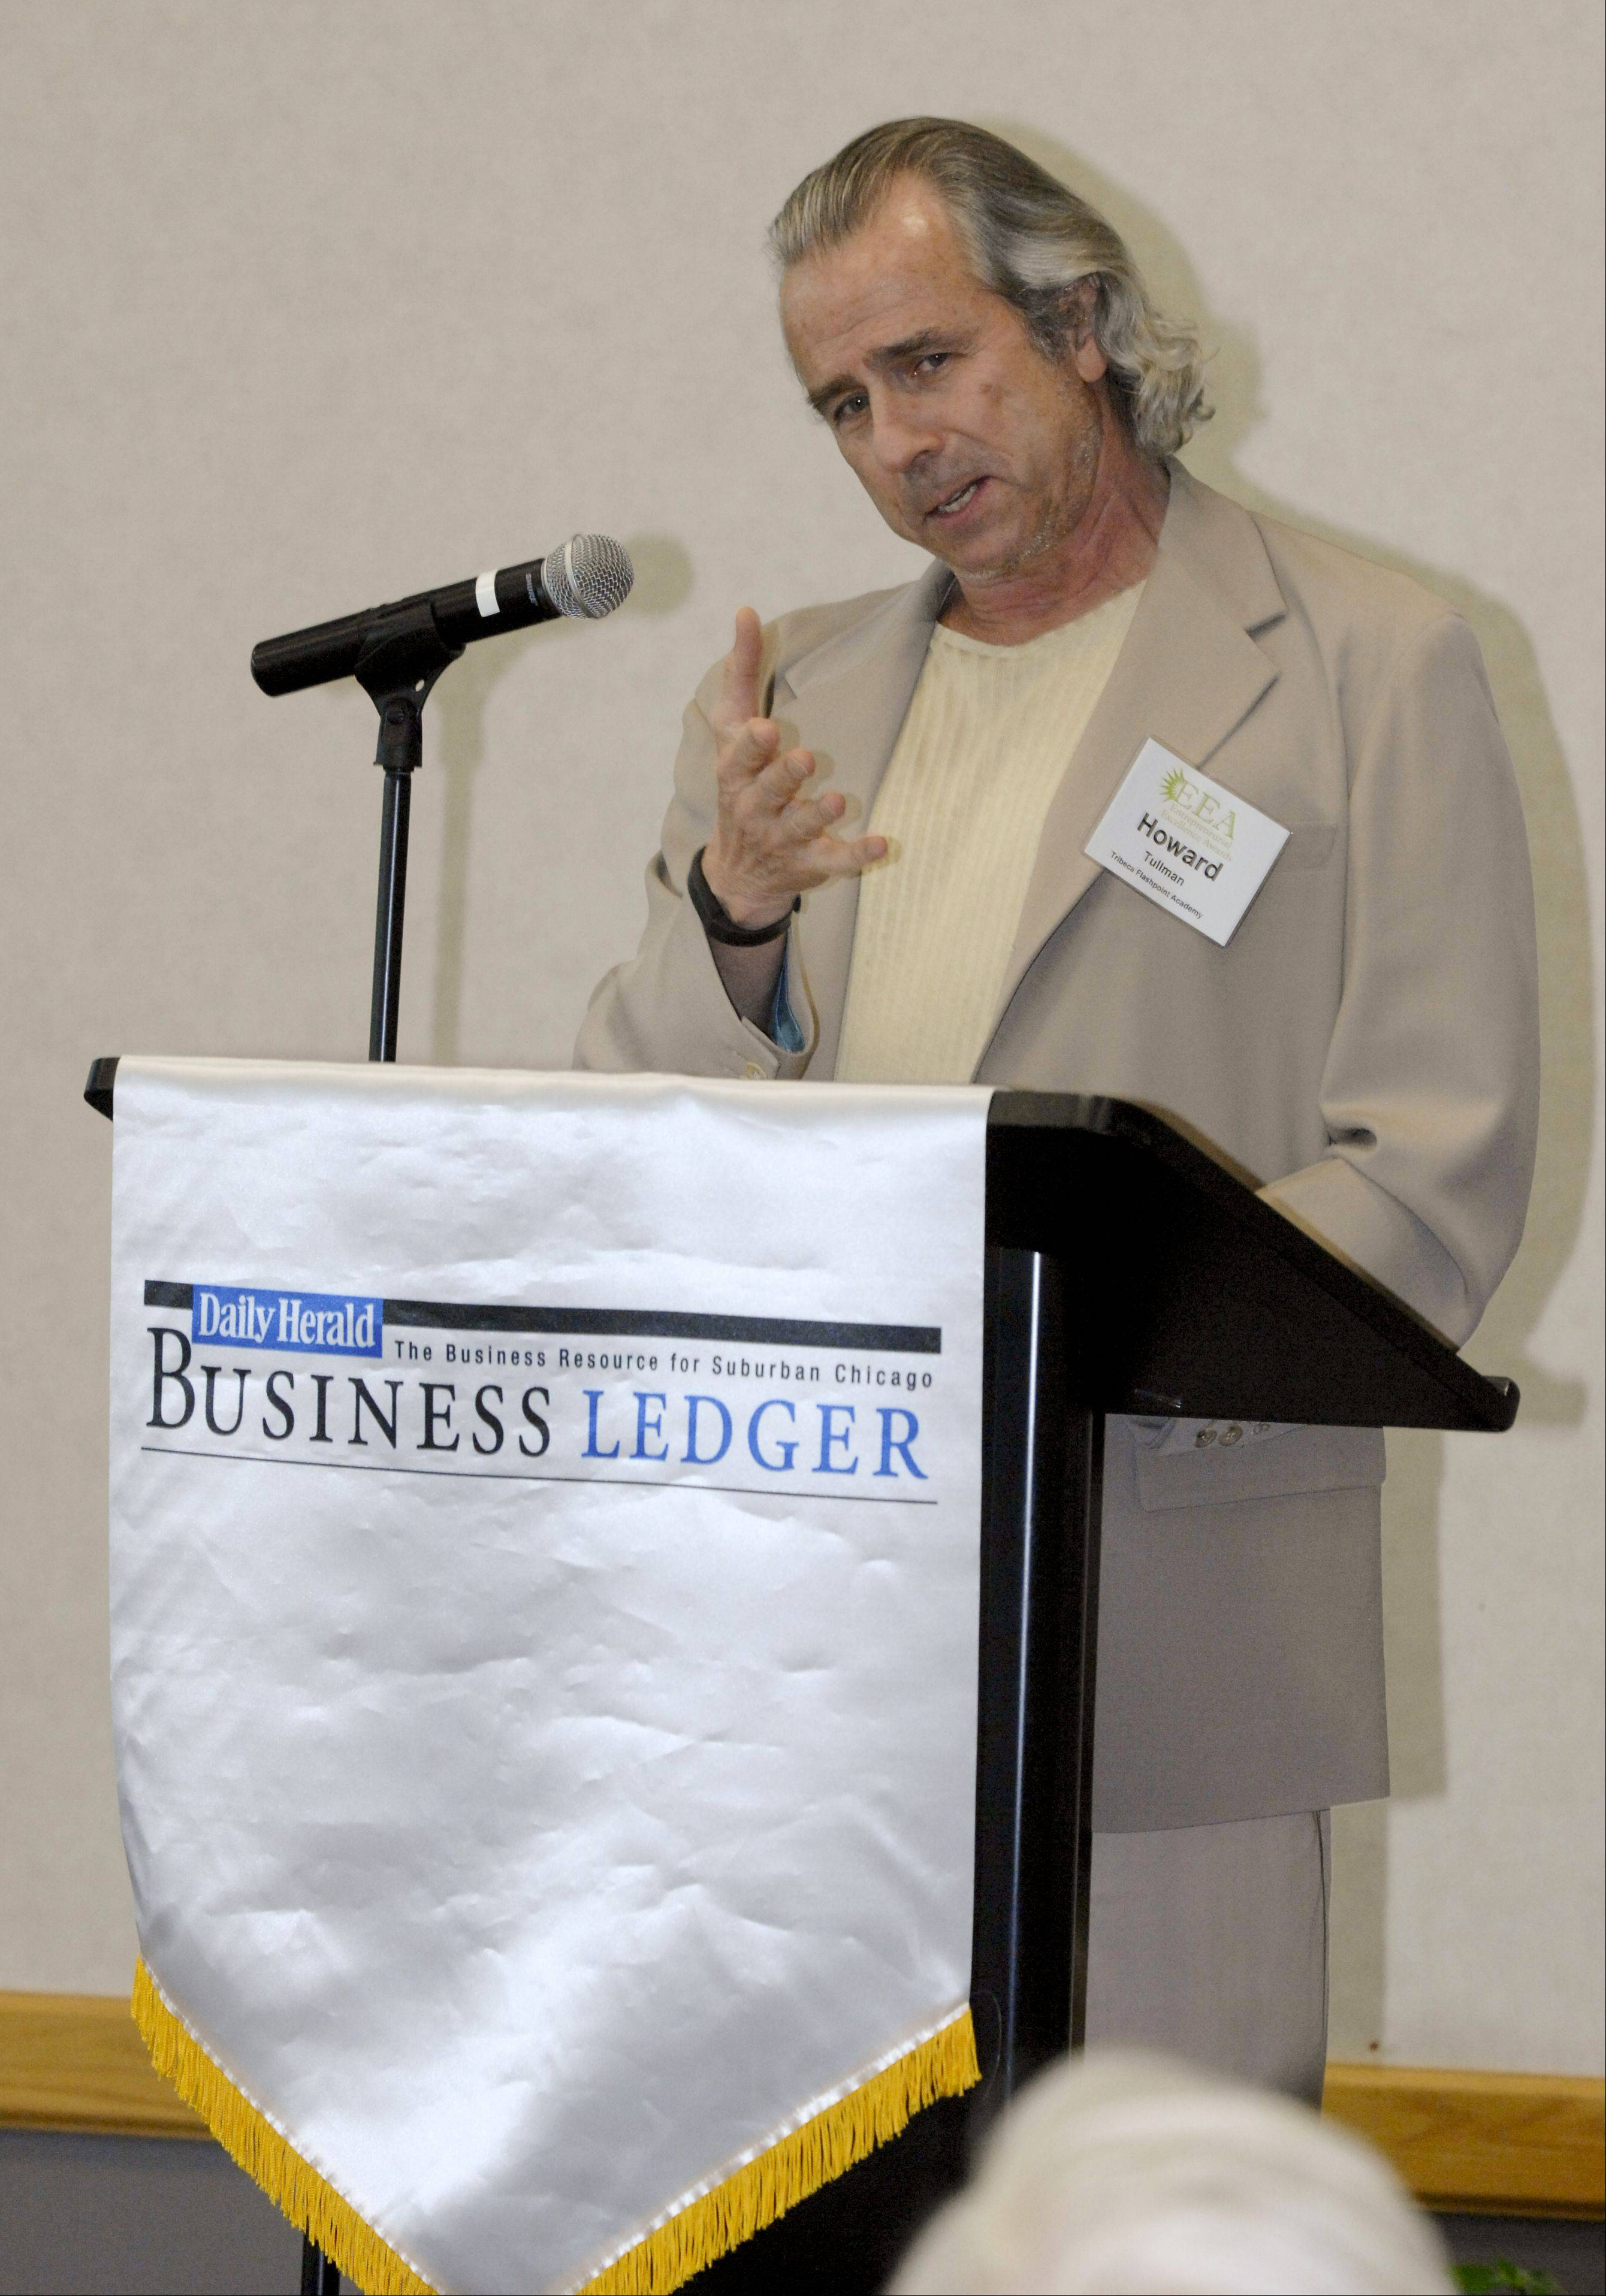 Mark Black/mblack@dailyherald.comHoward Tullman give the keynote address at the Daily Herald Business Ledger 14th Annual Entrepreneurial Excellence Awards held at NIU Naperville Campus on Wednesday.